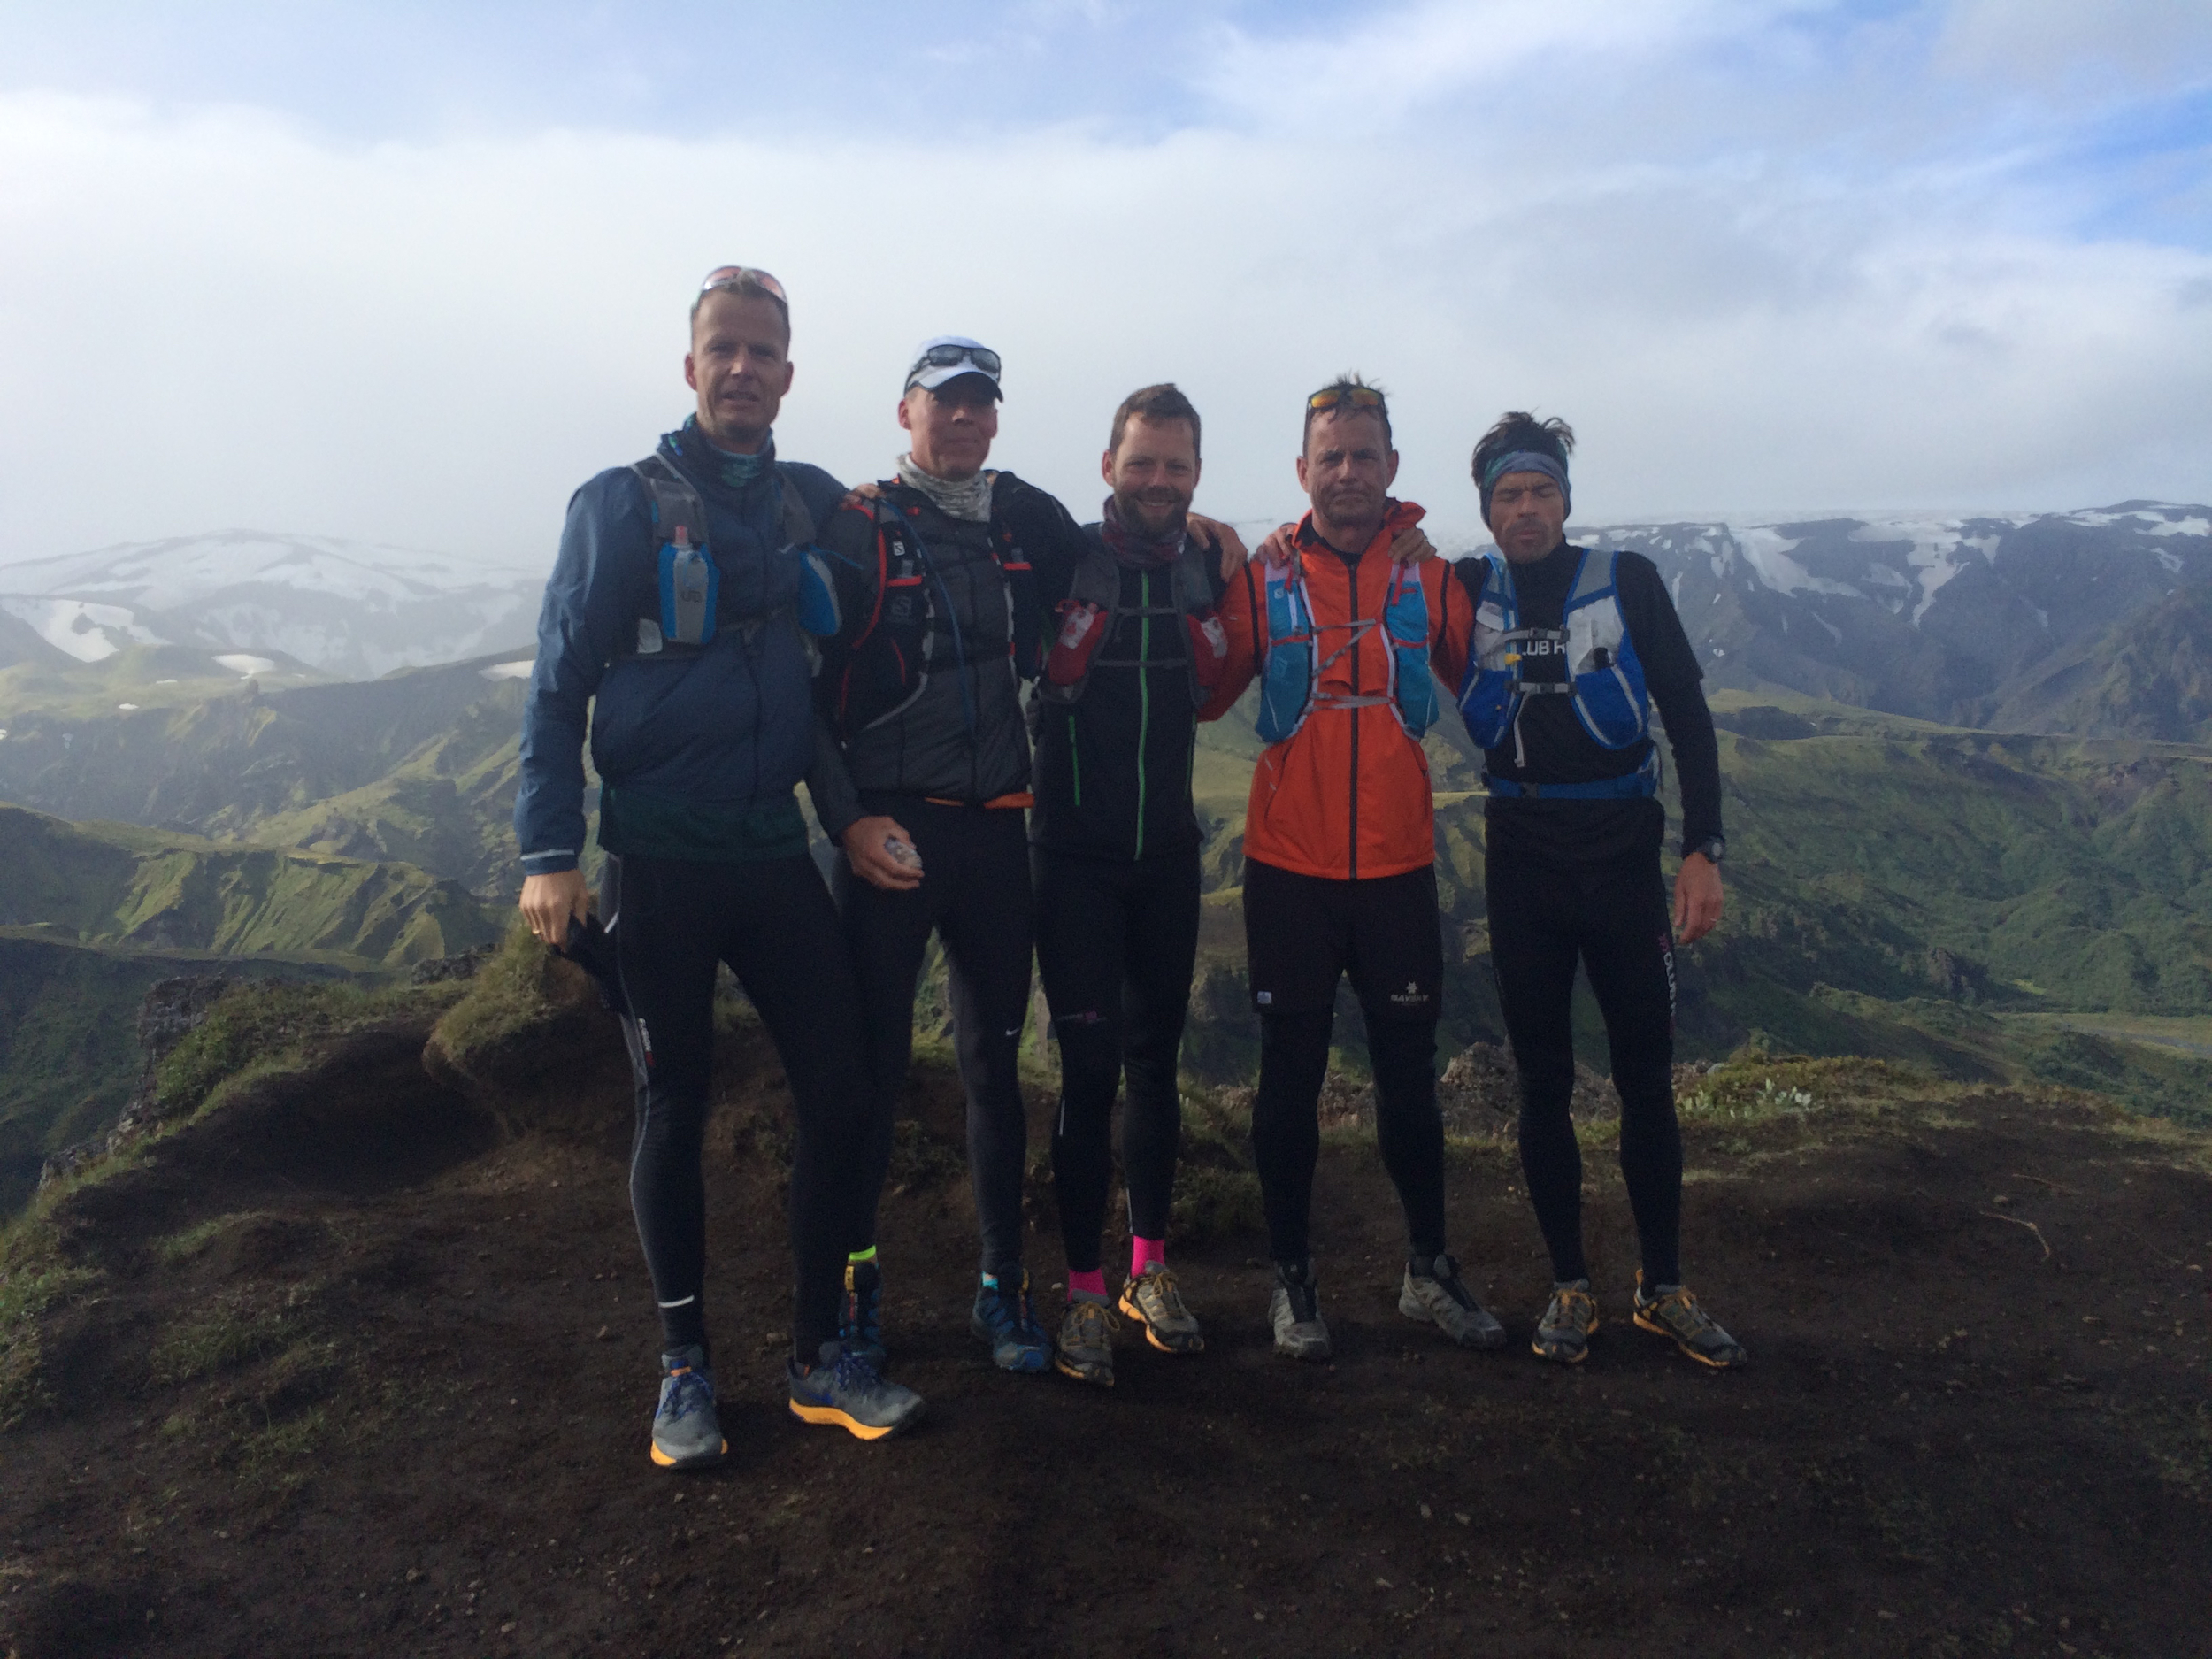 Runners take a break on the top